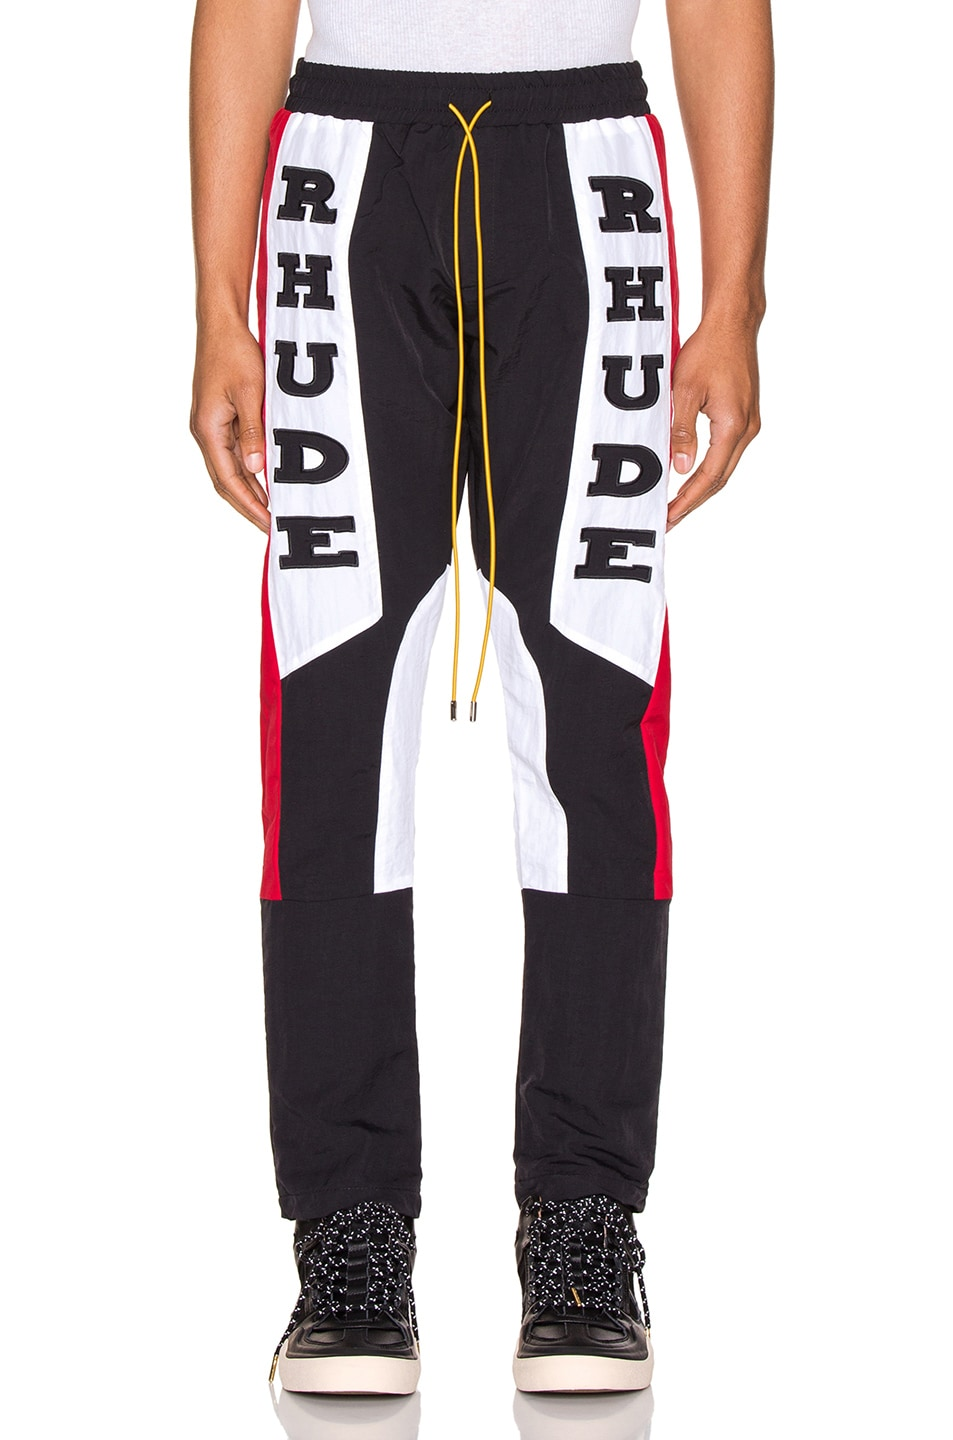 Image 1 of Rhude Rhacing Pant in Black & White & Red